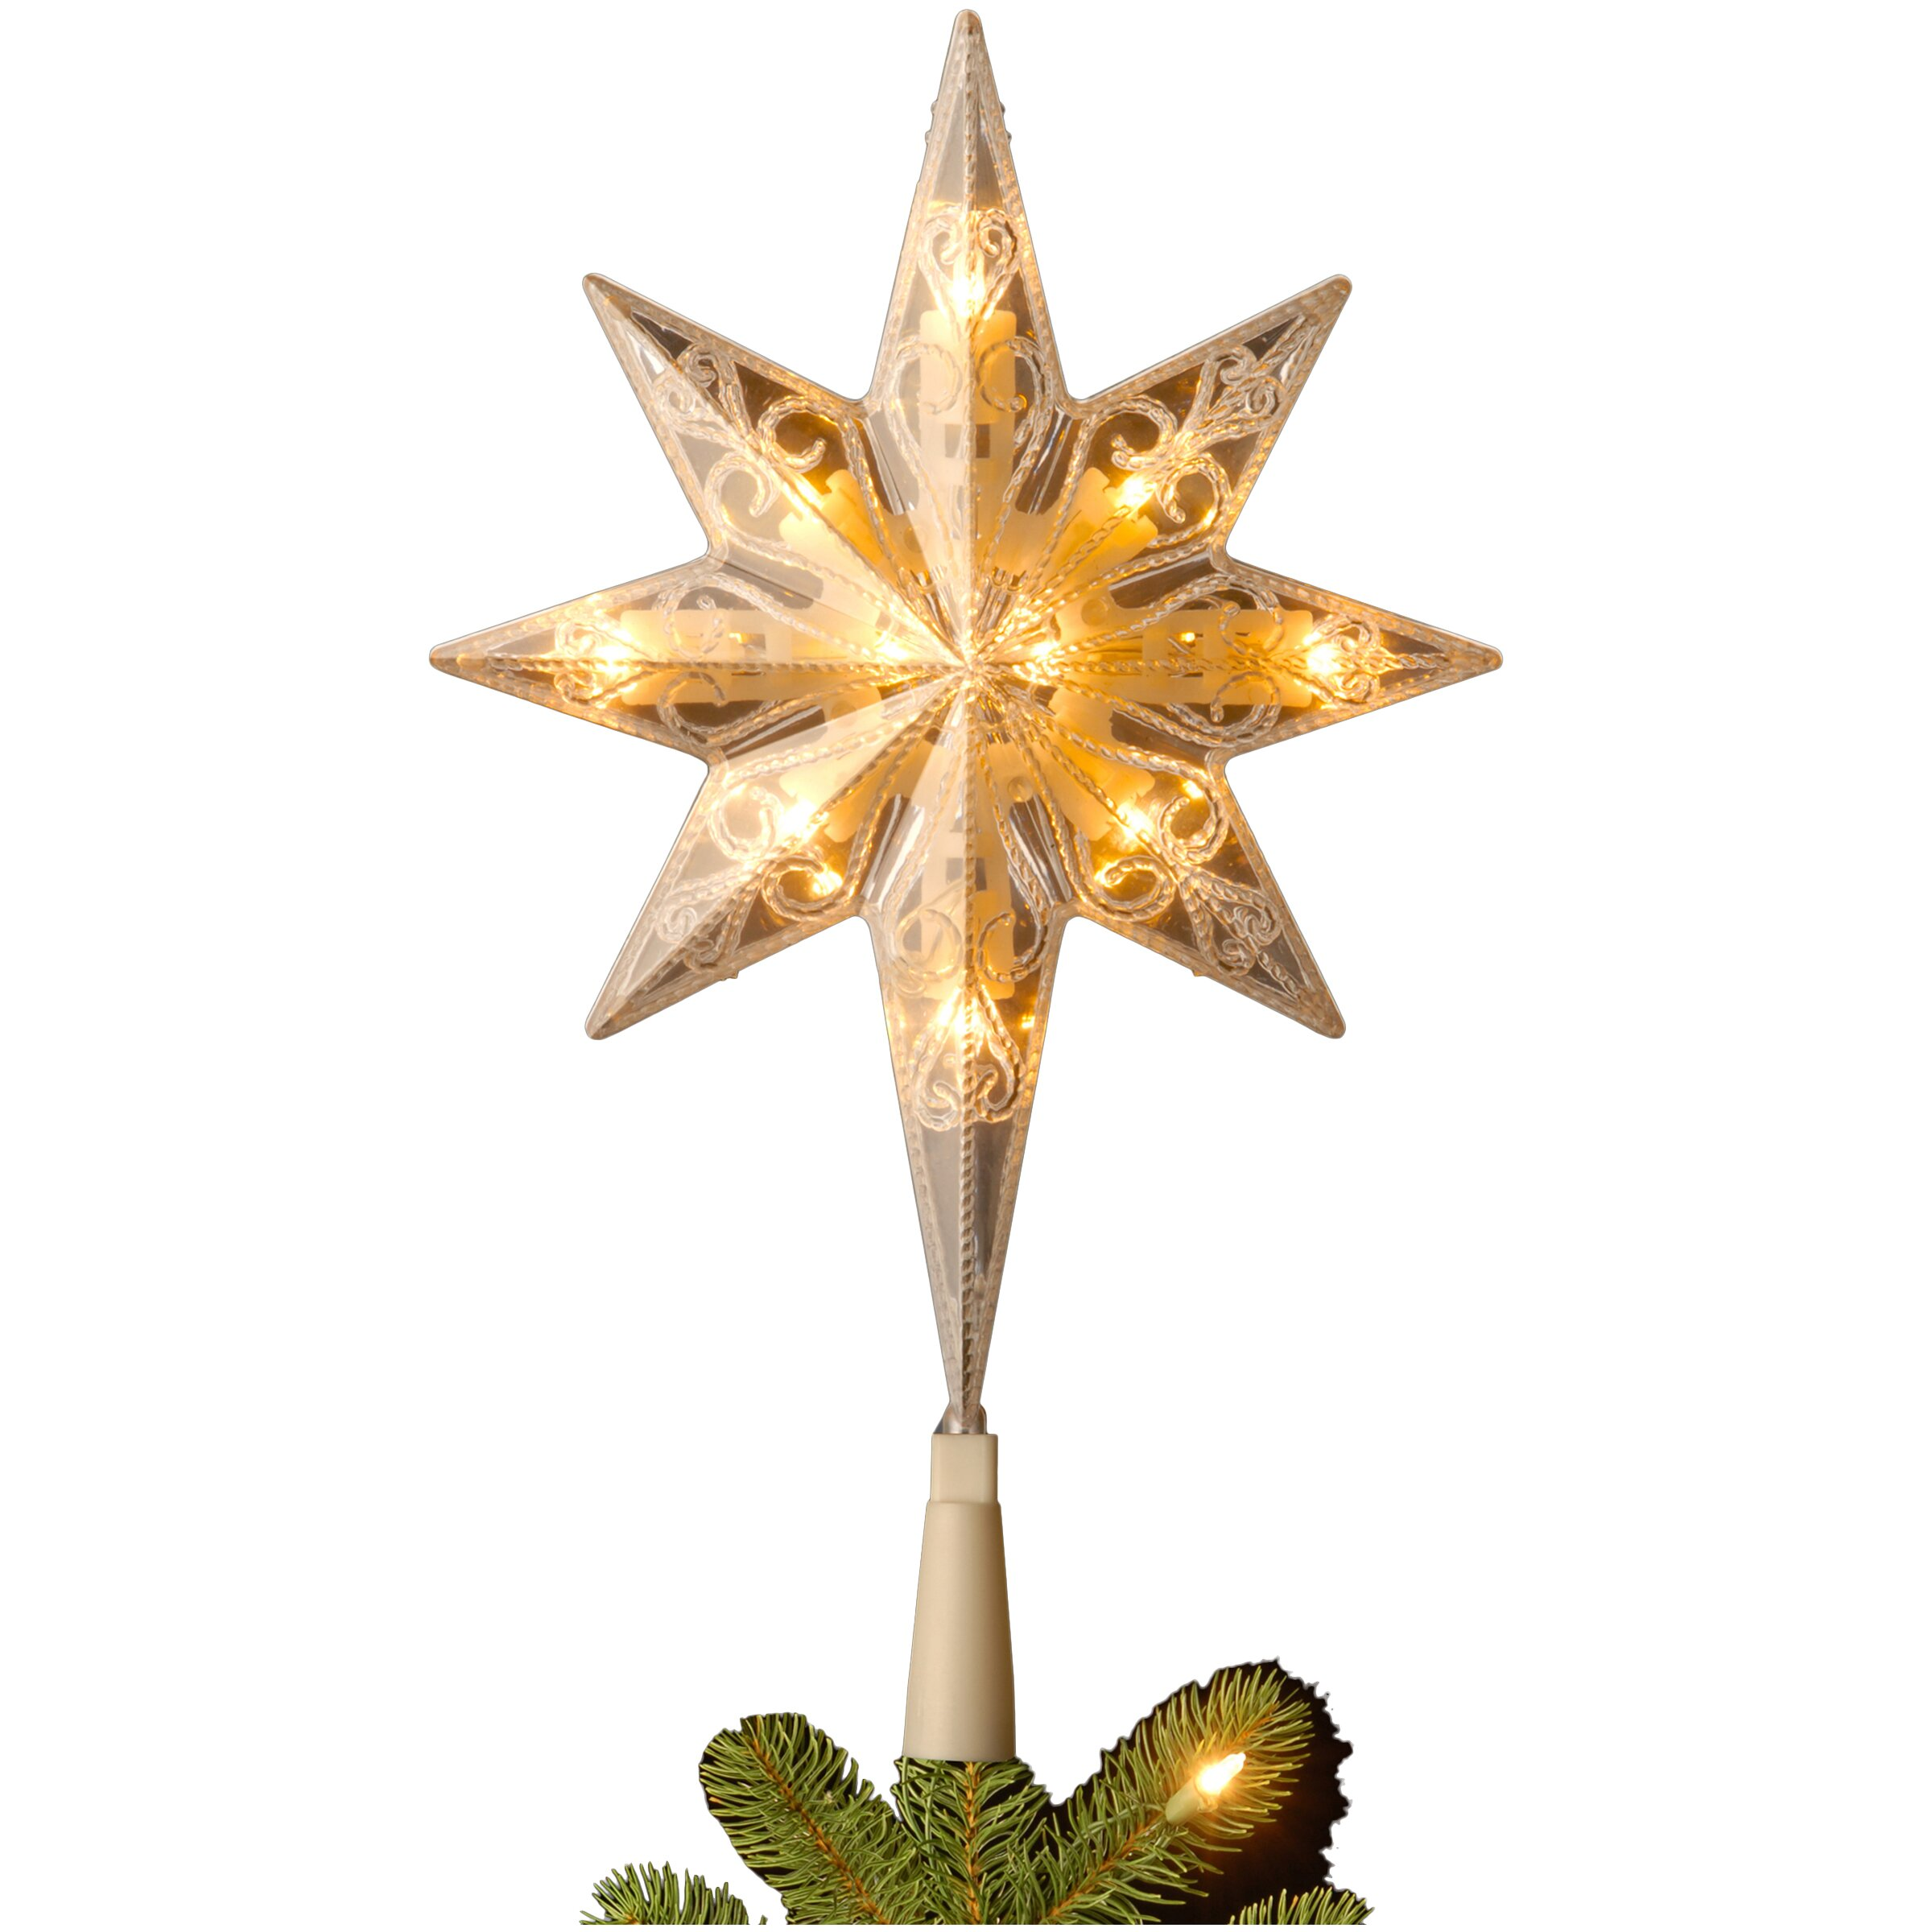 Star For A Christmas Tree: National Tree Co. Bethlehem Star Tree Topper With End